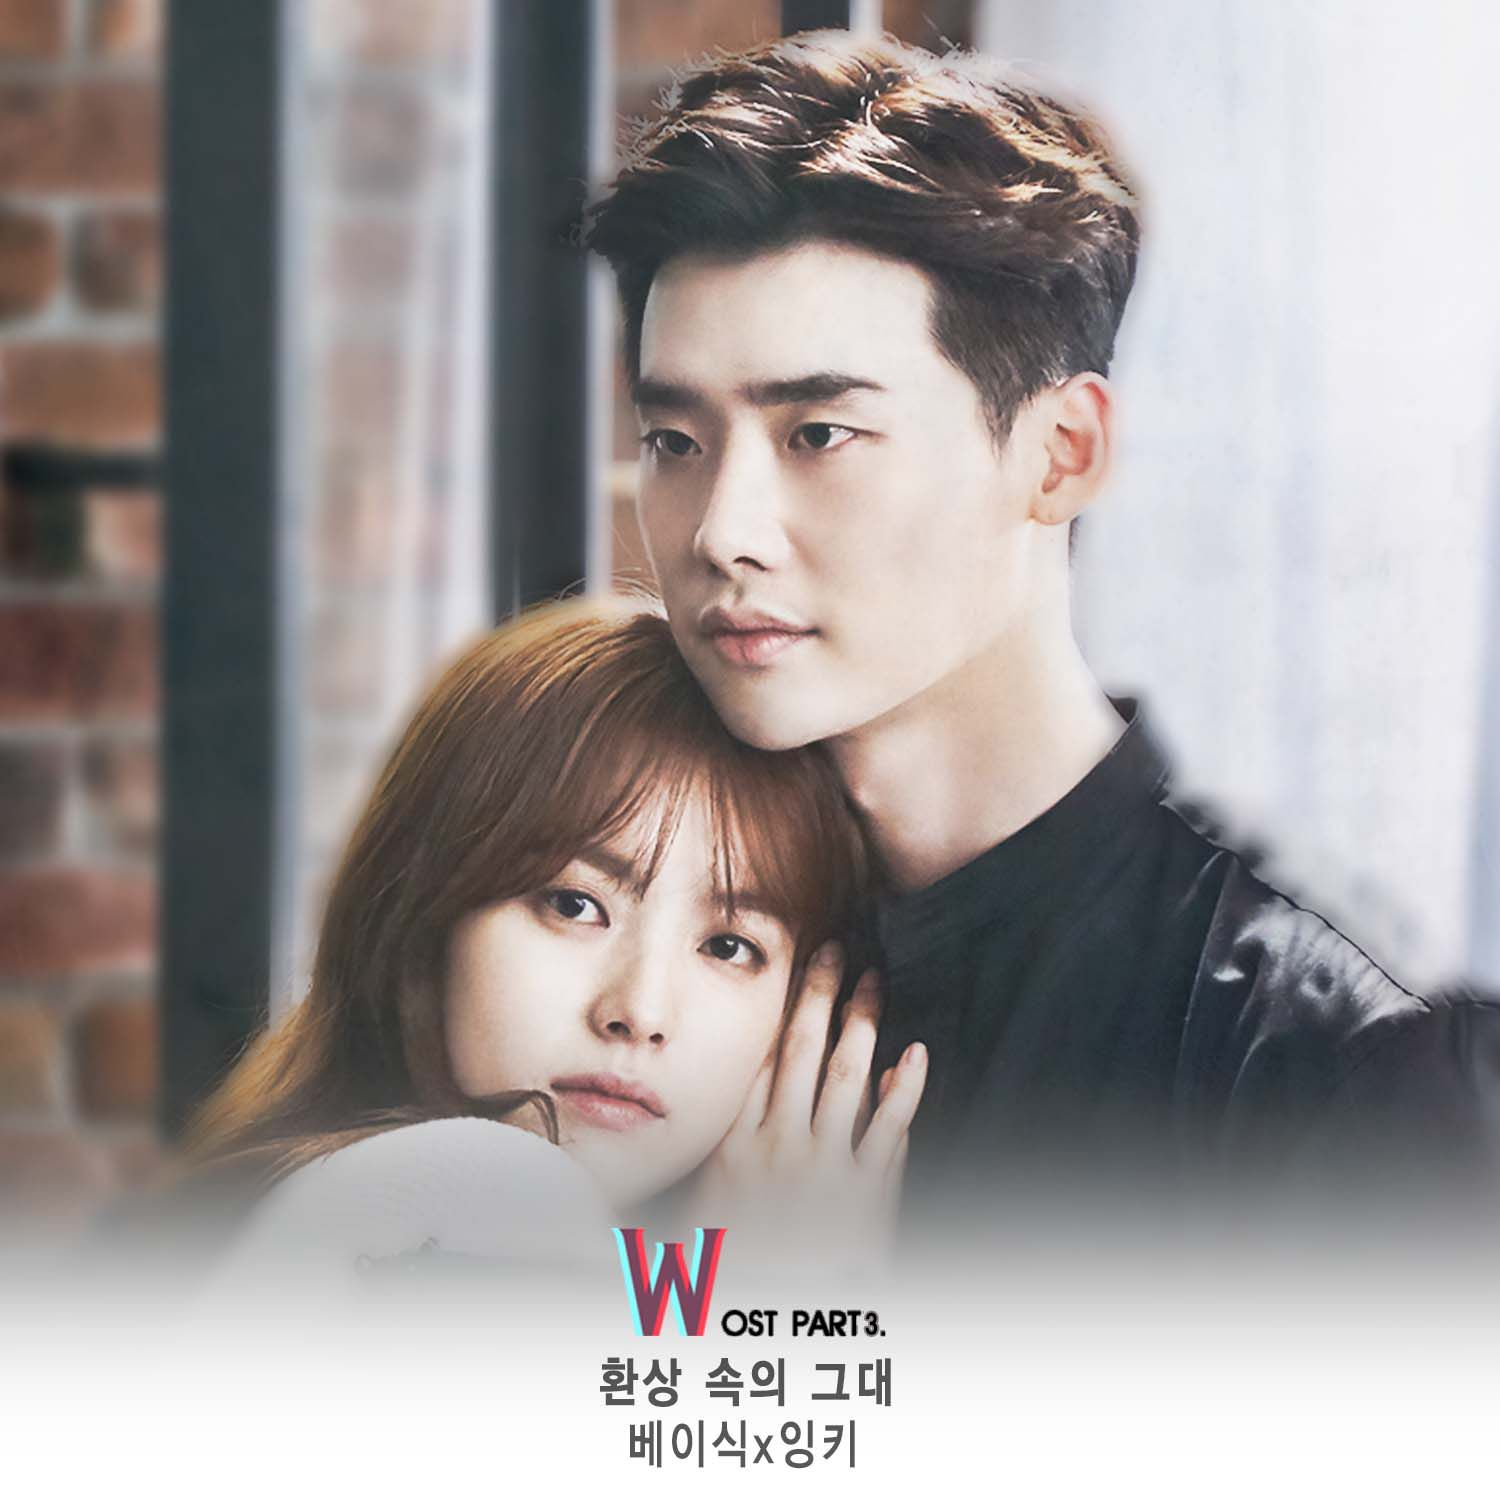 Basick, INKII - W OST Part. 3 - In The Illusion K2Ost free mp3 download korean song kpop kdrama ost lyric 320 kbps